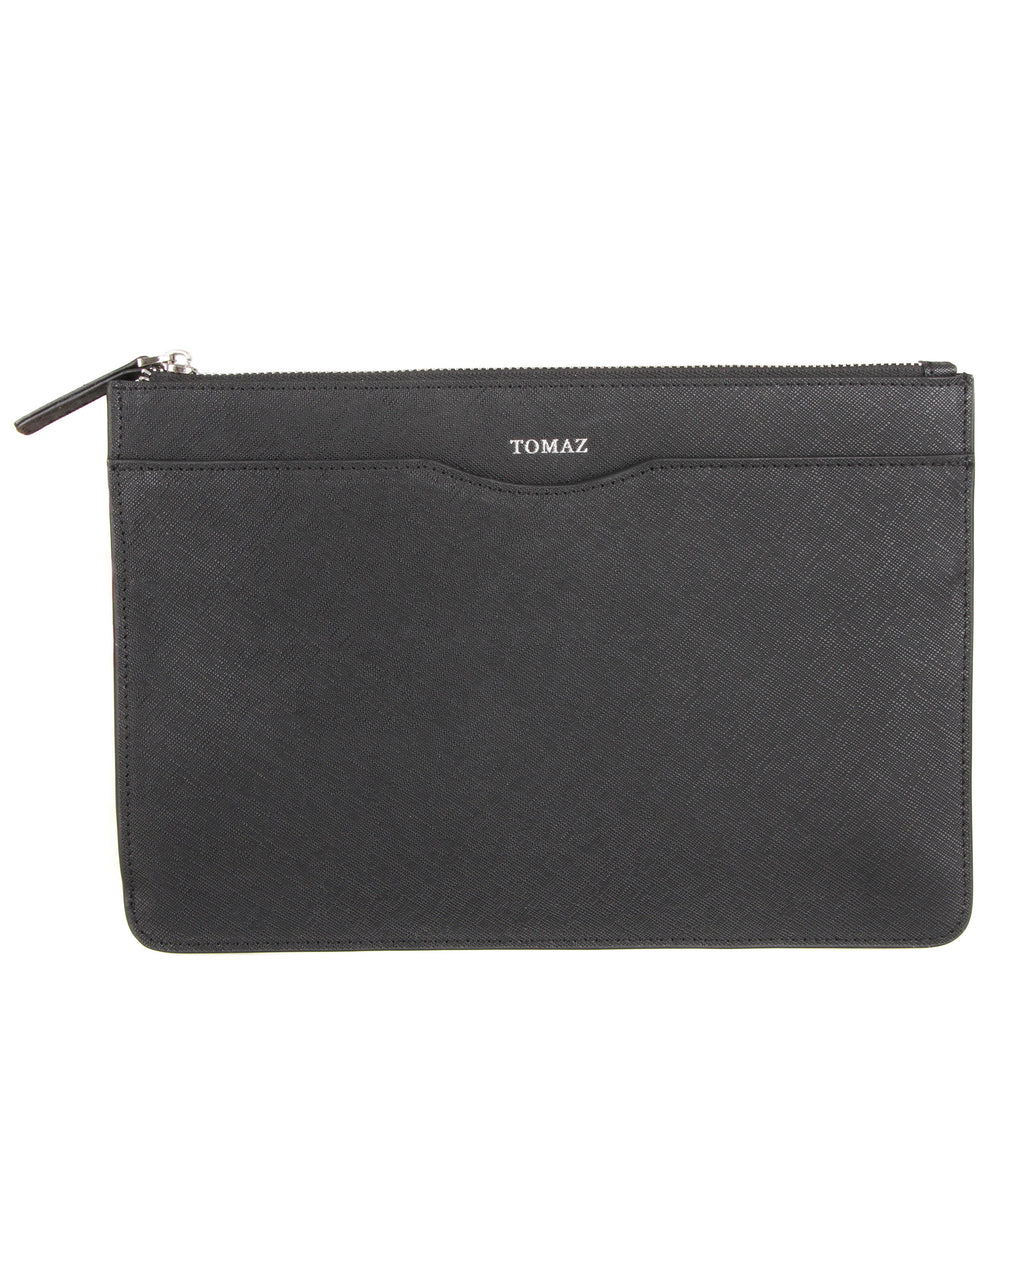 Tomaz NT75 Leather Clutch (Tan)